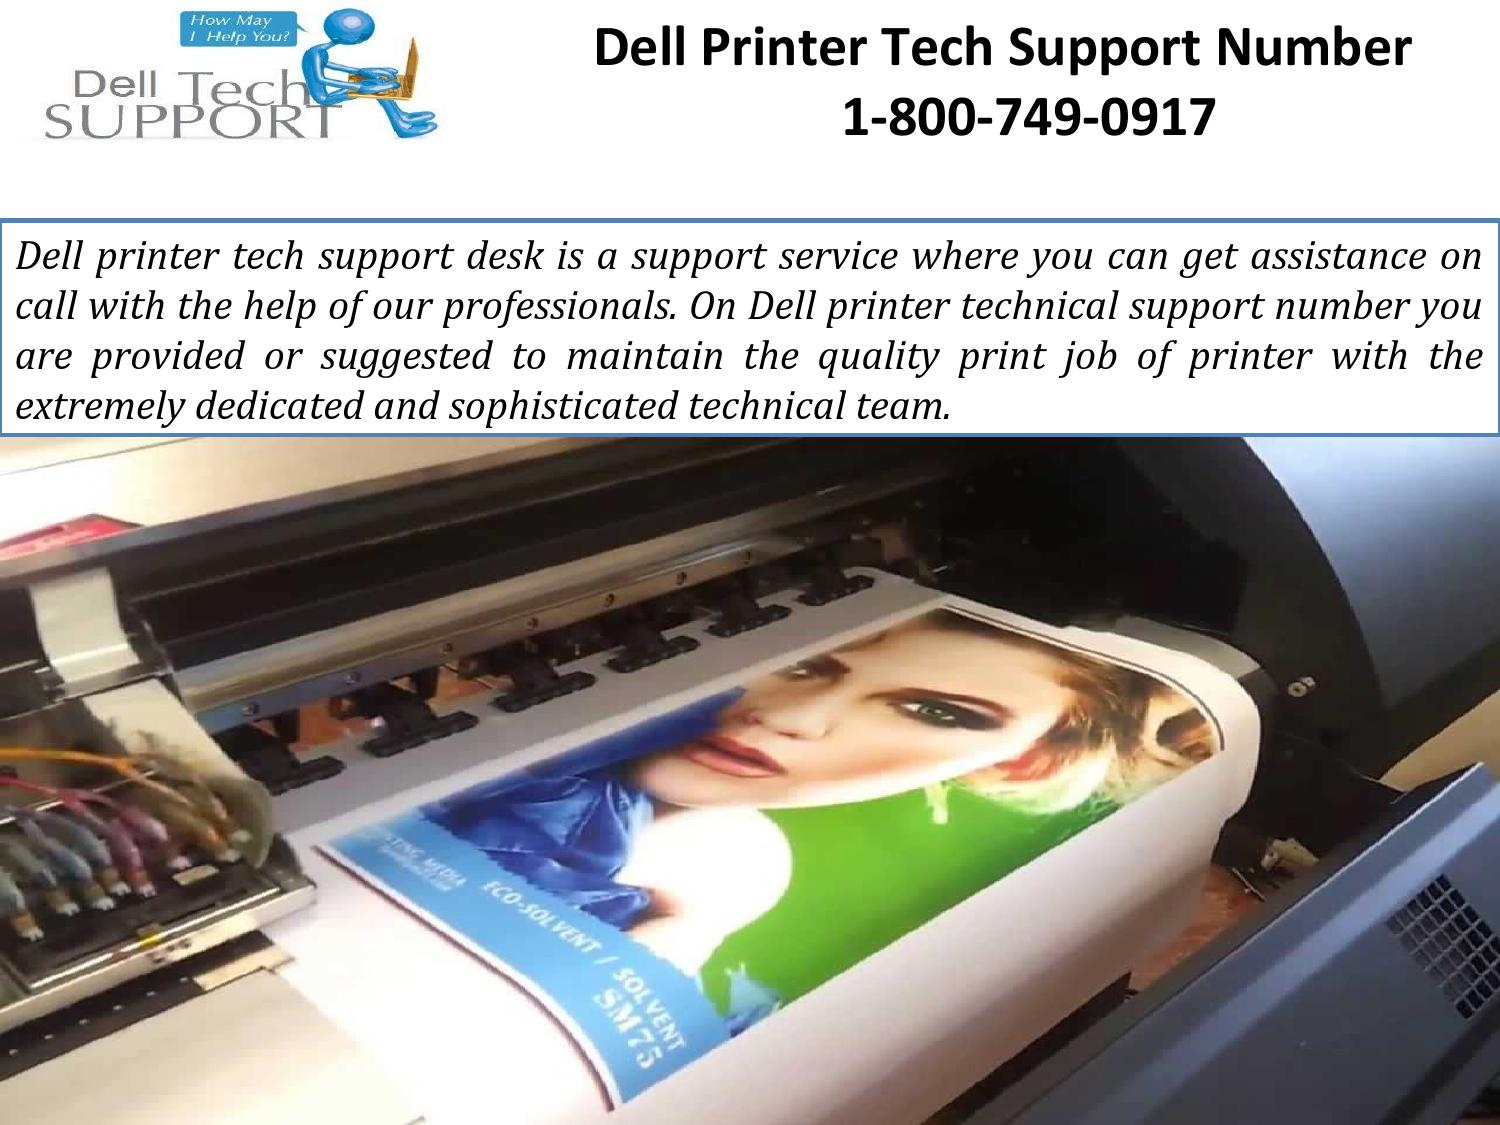 dell printer tech support number 1